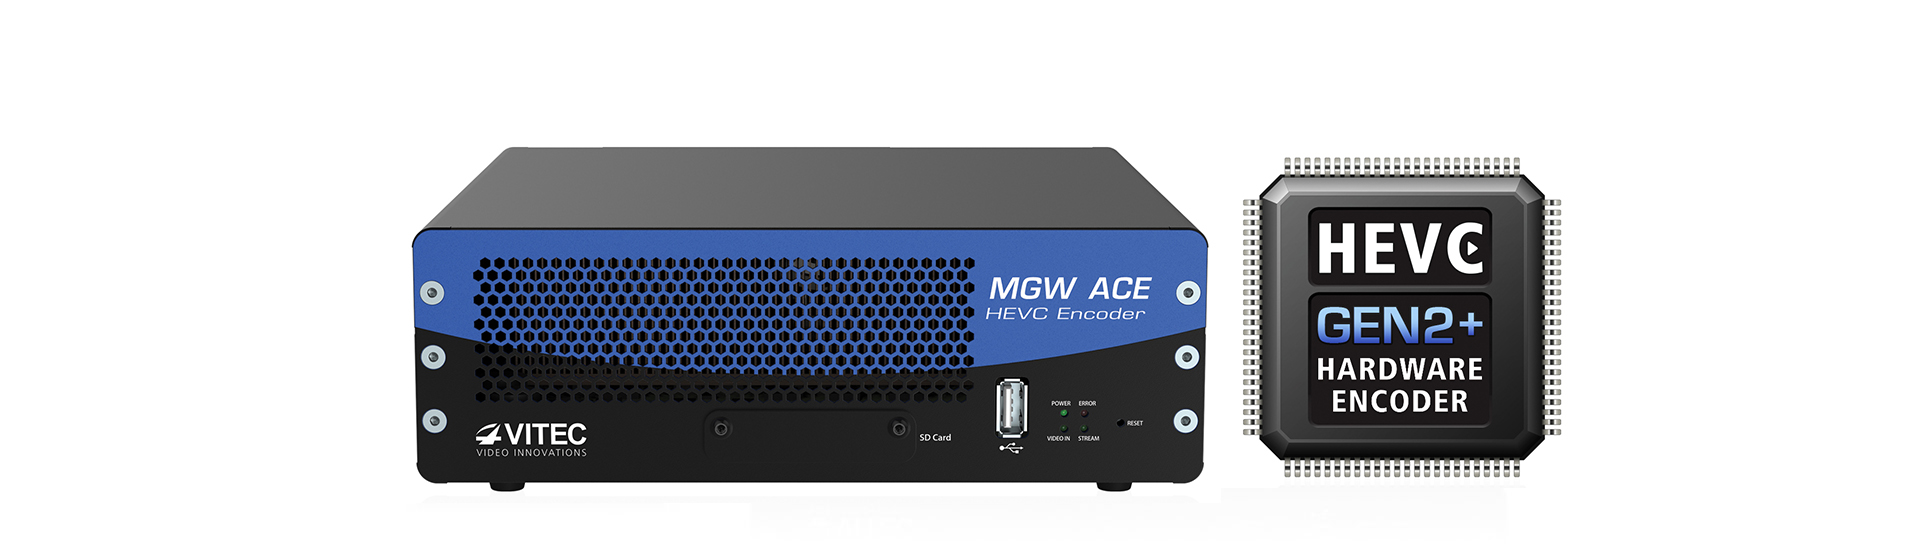 MGW Ace Encoder Compact HEVC (H.265) Hardware Encoder